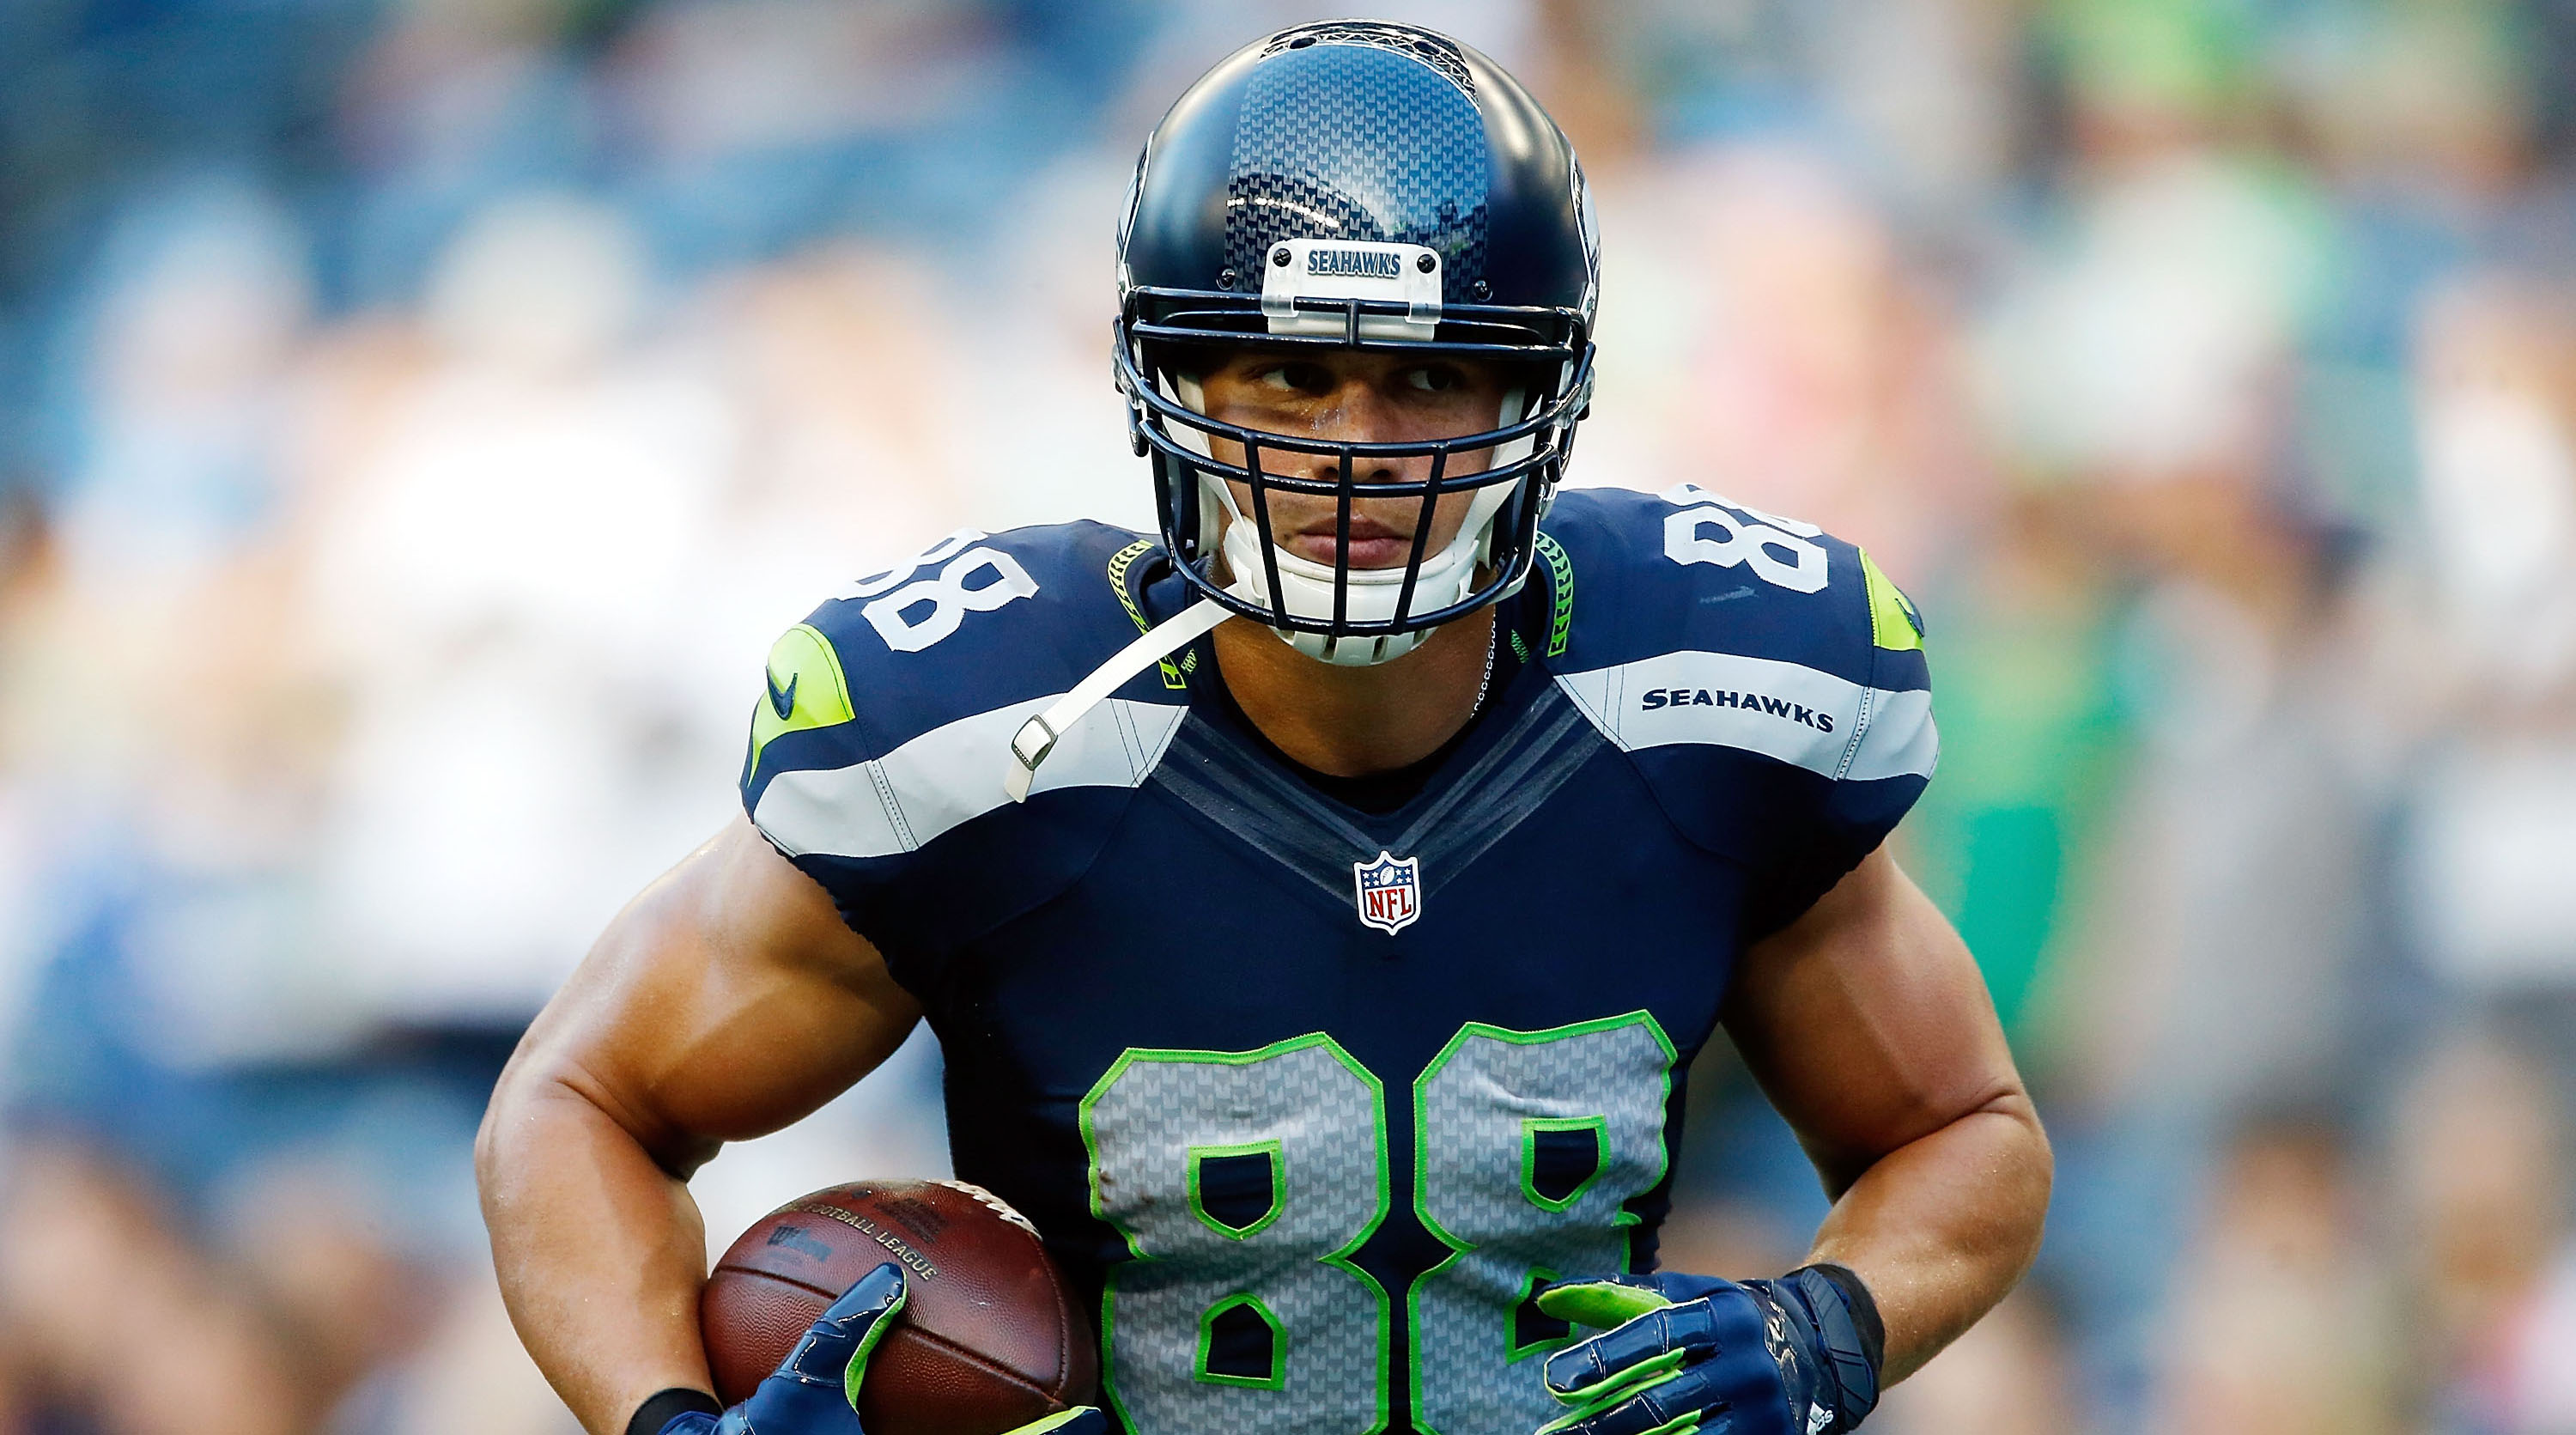 Jimmy Graham Seahawks TE discusses road to recovery